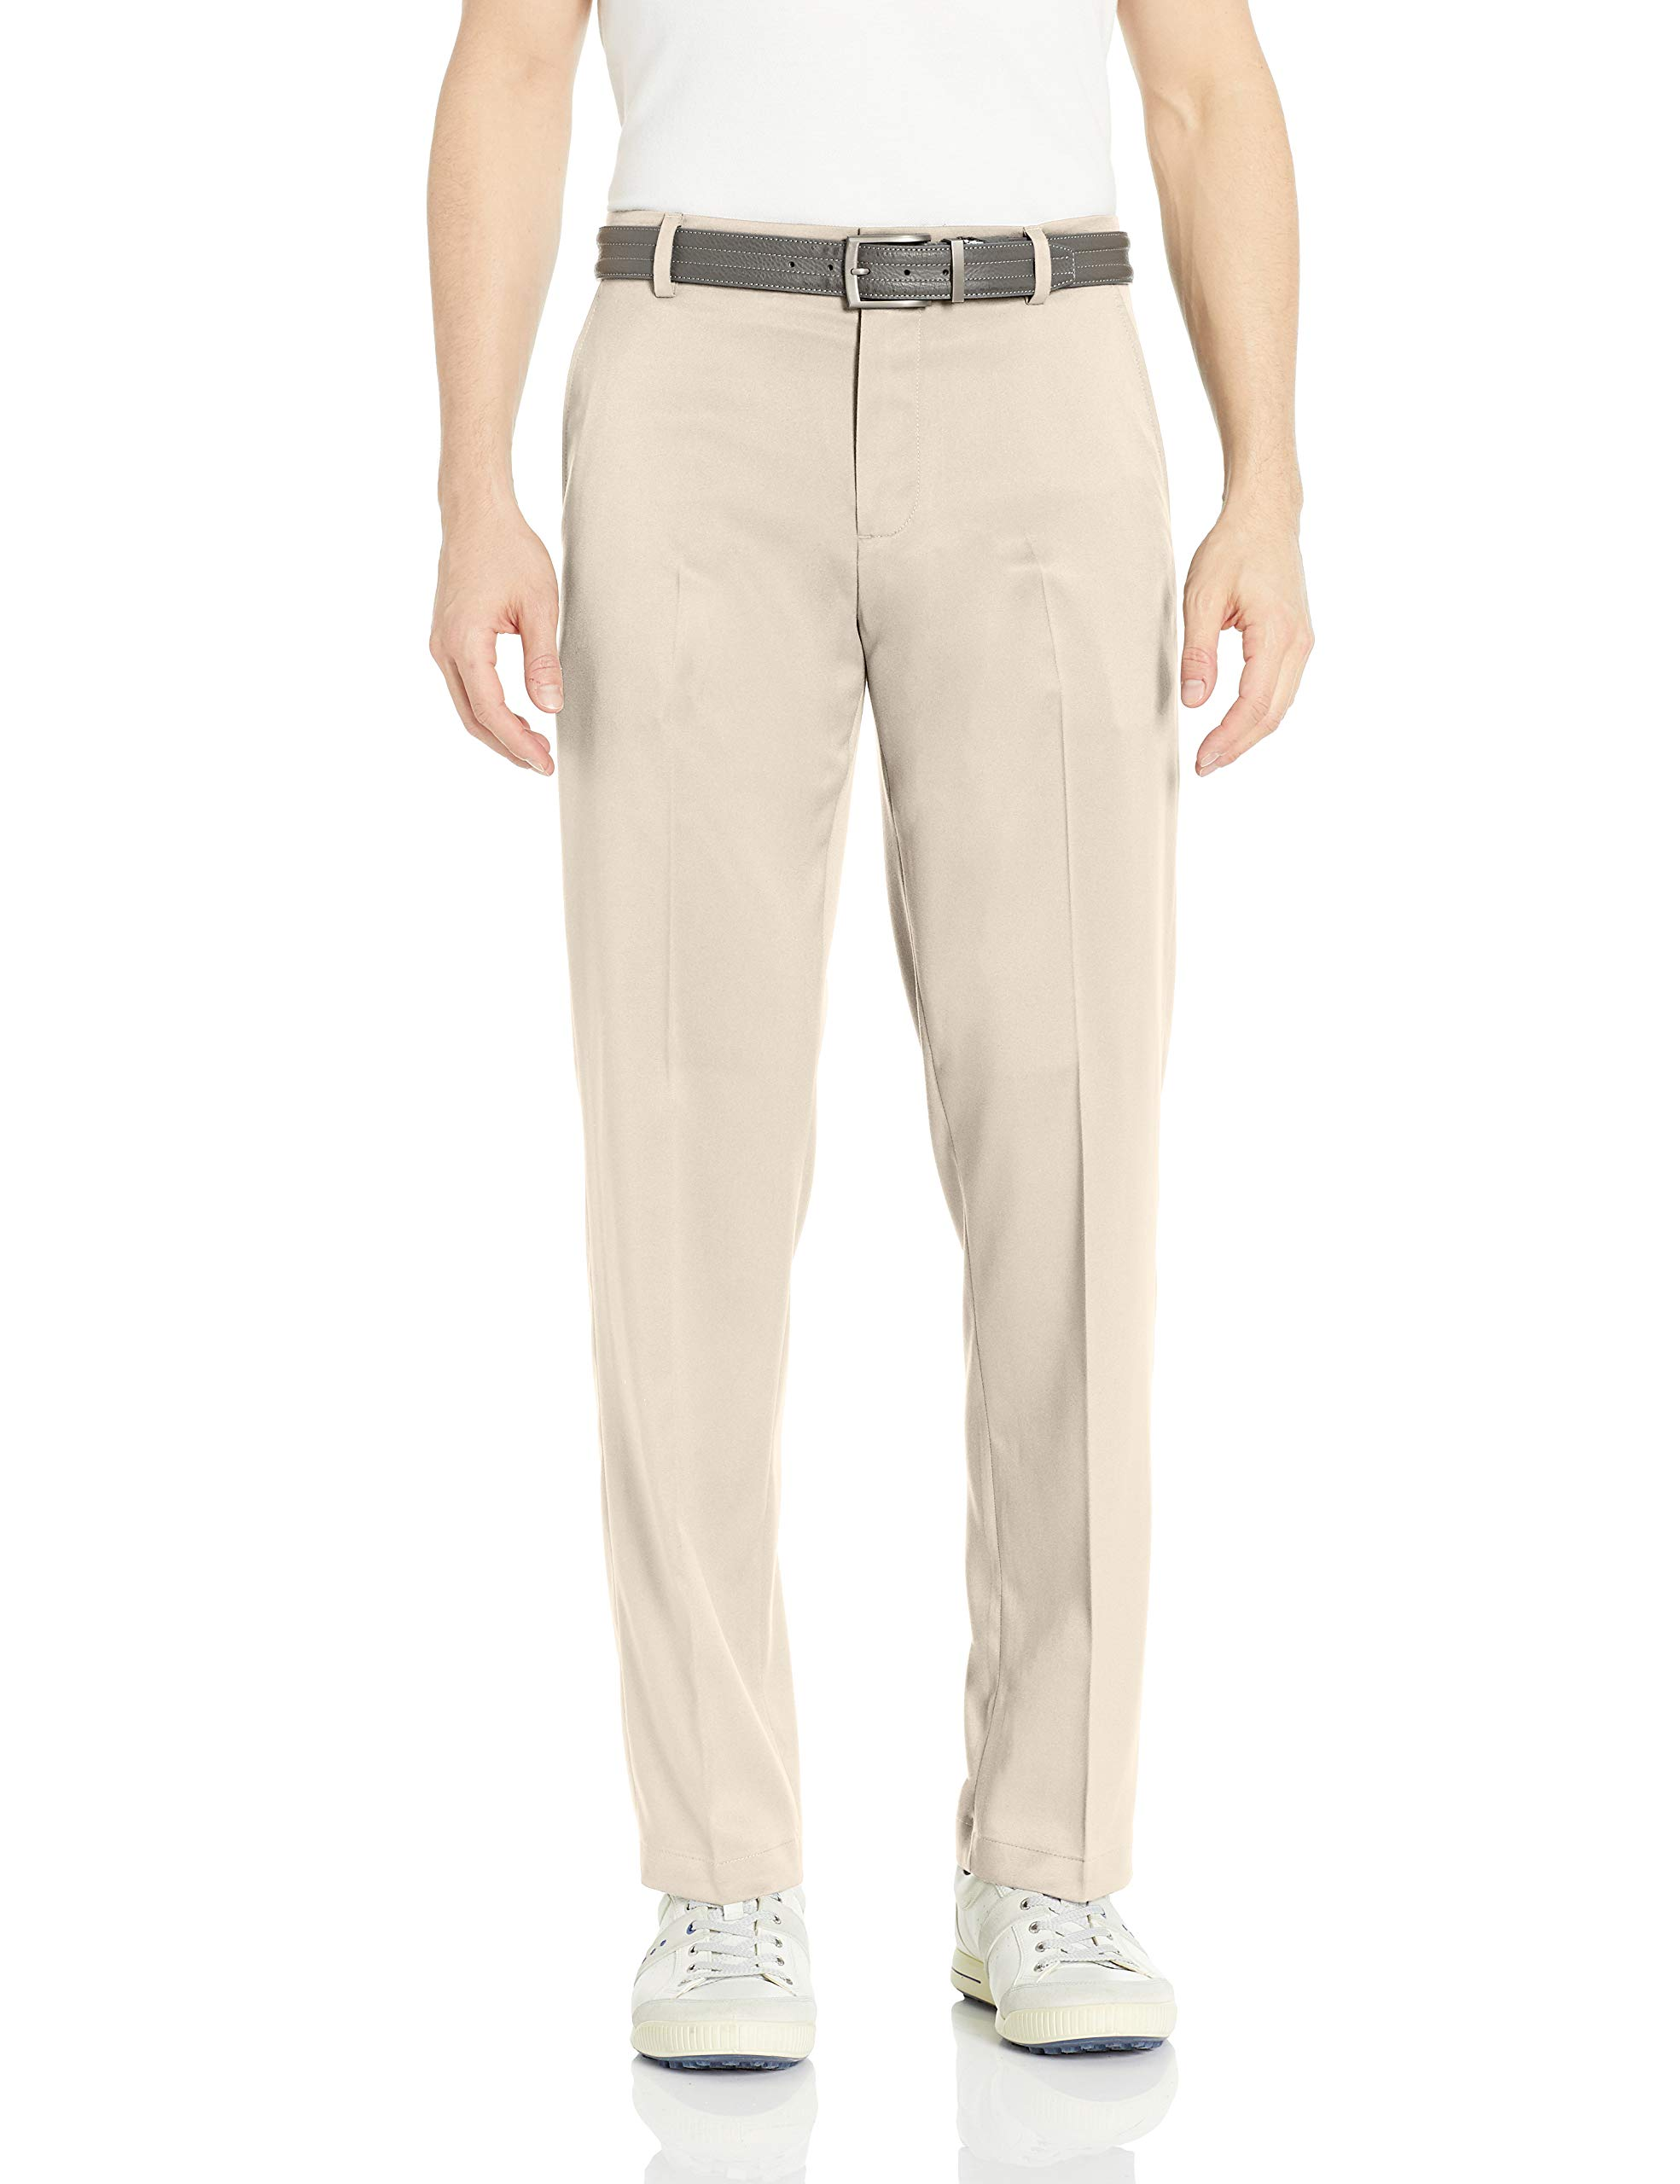 Amazon Essentials Men's Standard Classic-Fit Stretch Golf Pant, Stone, 29W x 30L by Amazon Essentials